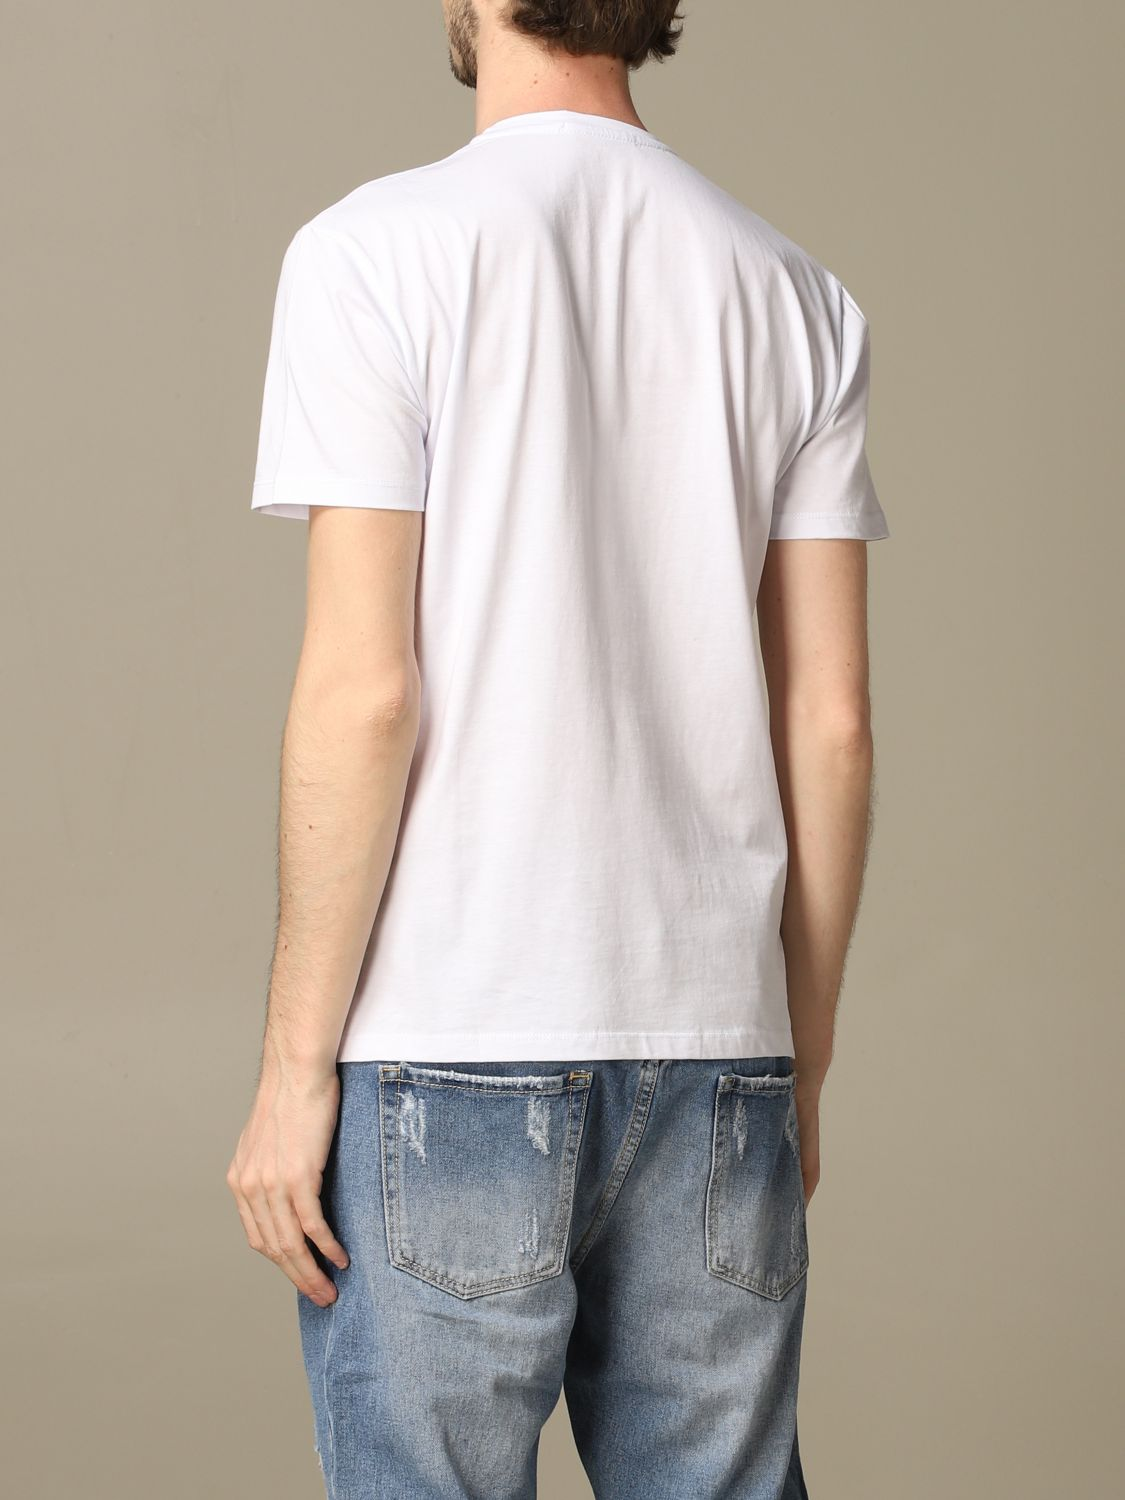 Sweater Alessandro Dell'acqua: Alessandro Dell'acqua t-shirt with writing white 2